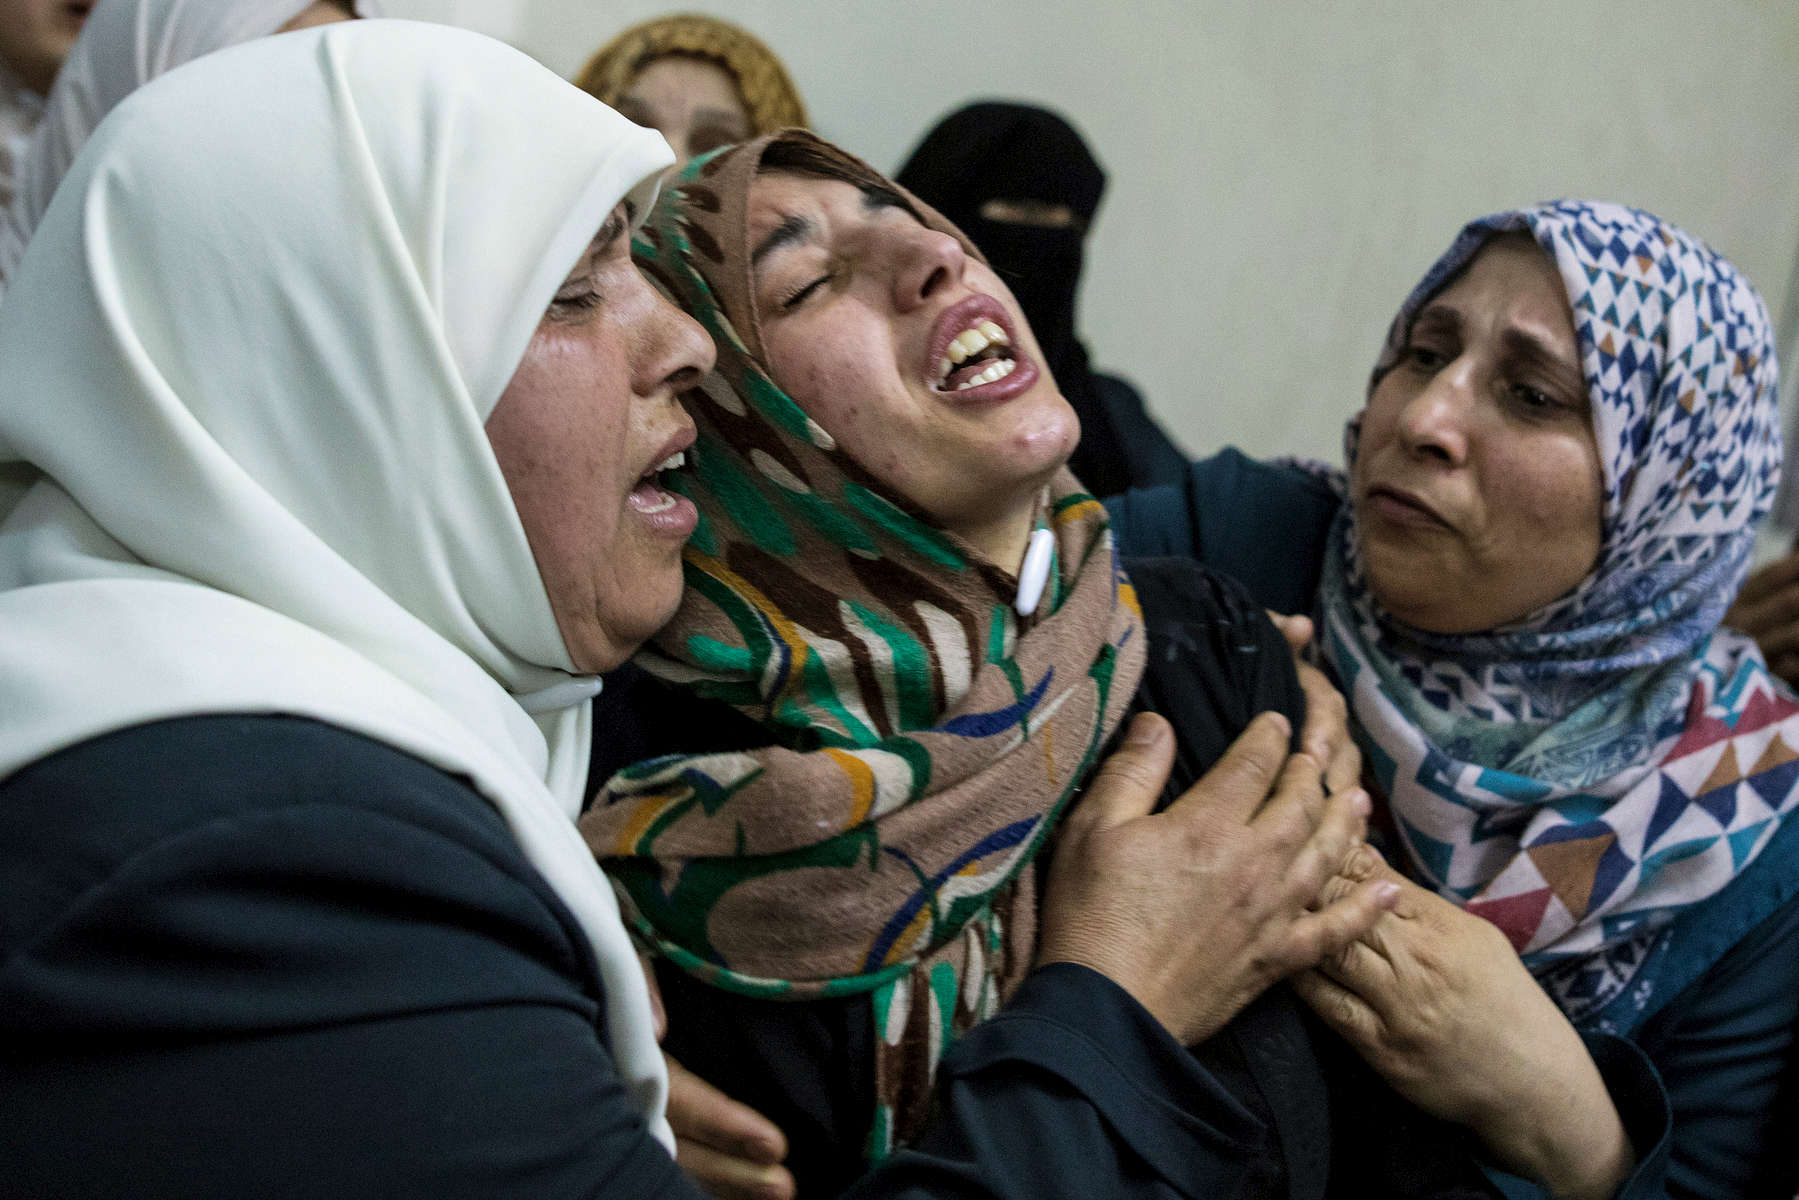 GAZA CITY, GAZA STRIP- MAY 14,2018 A family grieves as another funeral takes place on May 14,2018 in Gaza city, Gaza strip. The world's largest open air prison along the Israel-Gaza border. Everyone is well aware that Gaza's two million inhabitants are trapped in a cycle of violence and poverty, created by policies and political decisions on both sides. The problems and complications affecting Gaza today are overwhelming. The world, seemingly accustomed to the suffering of the Gazan people turns a blind eye. (Photo by Paula Bronstein )